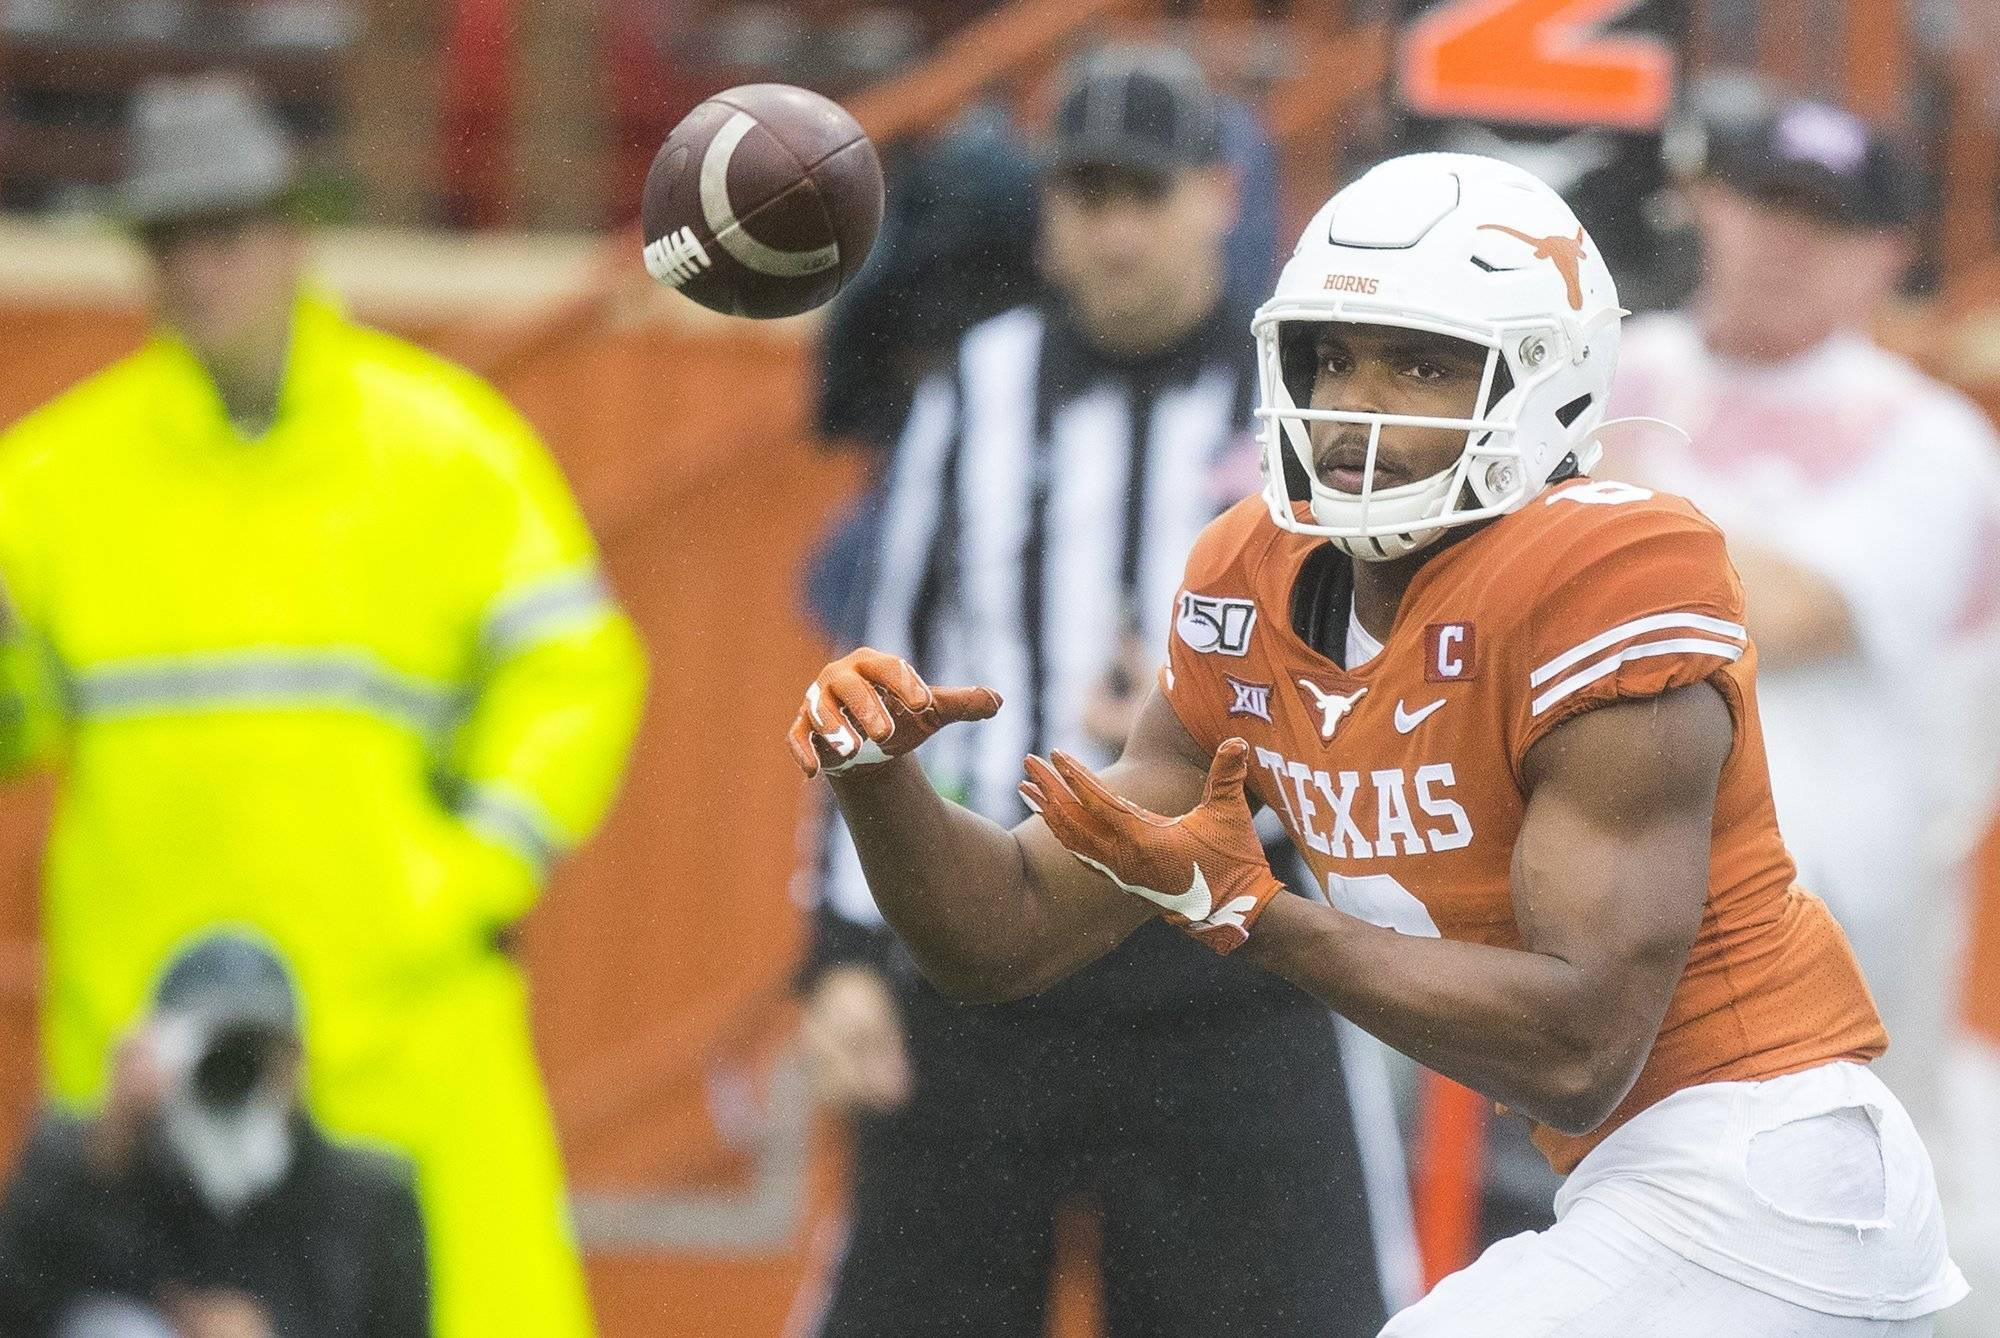 Big 12 recognizes Devin Duvernay and Roschon Johnson for 100-yard efforts against Texas Tech